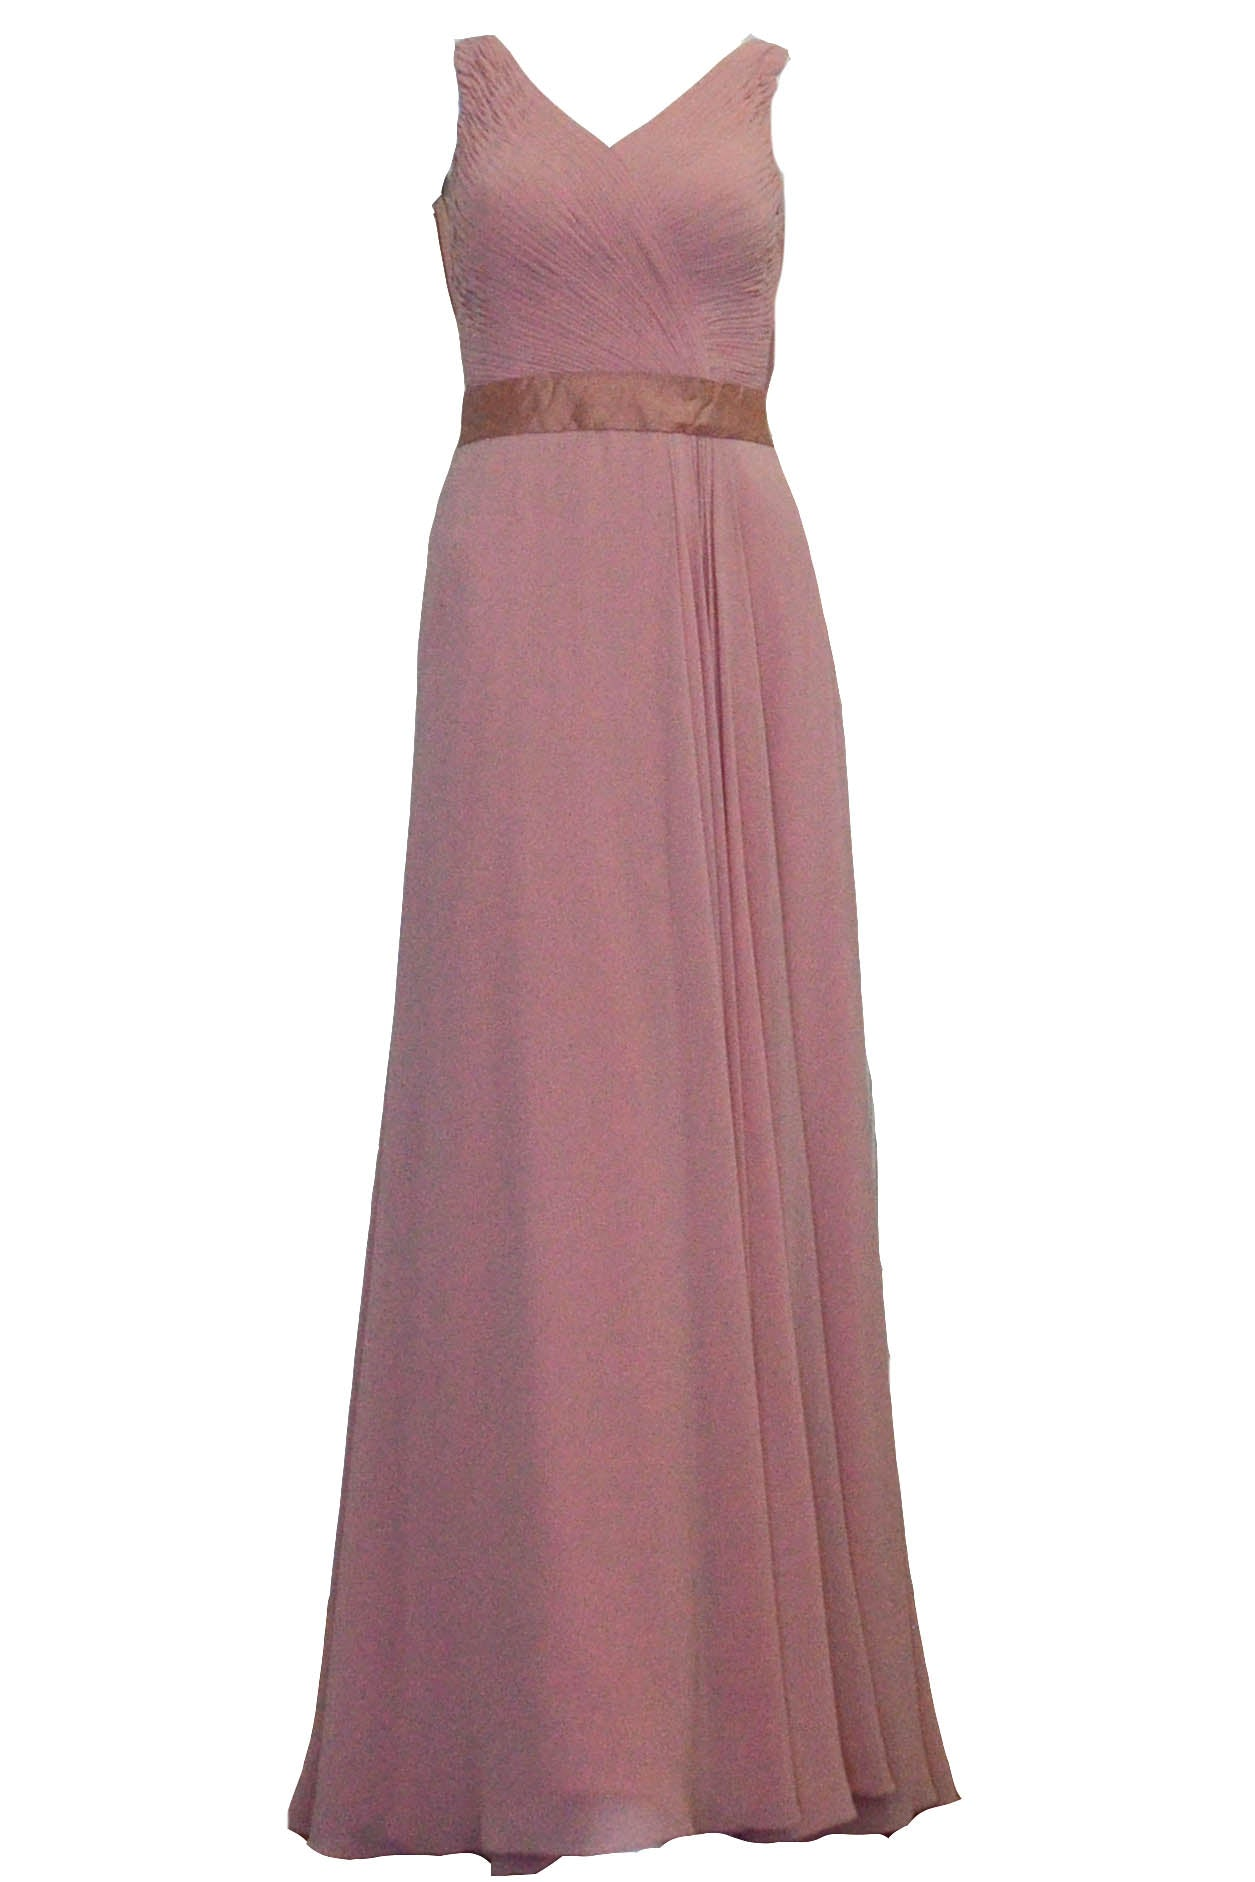 Rent : Indriyani Juwono - Pink Sleeveless Pleated Chiffon Dress